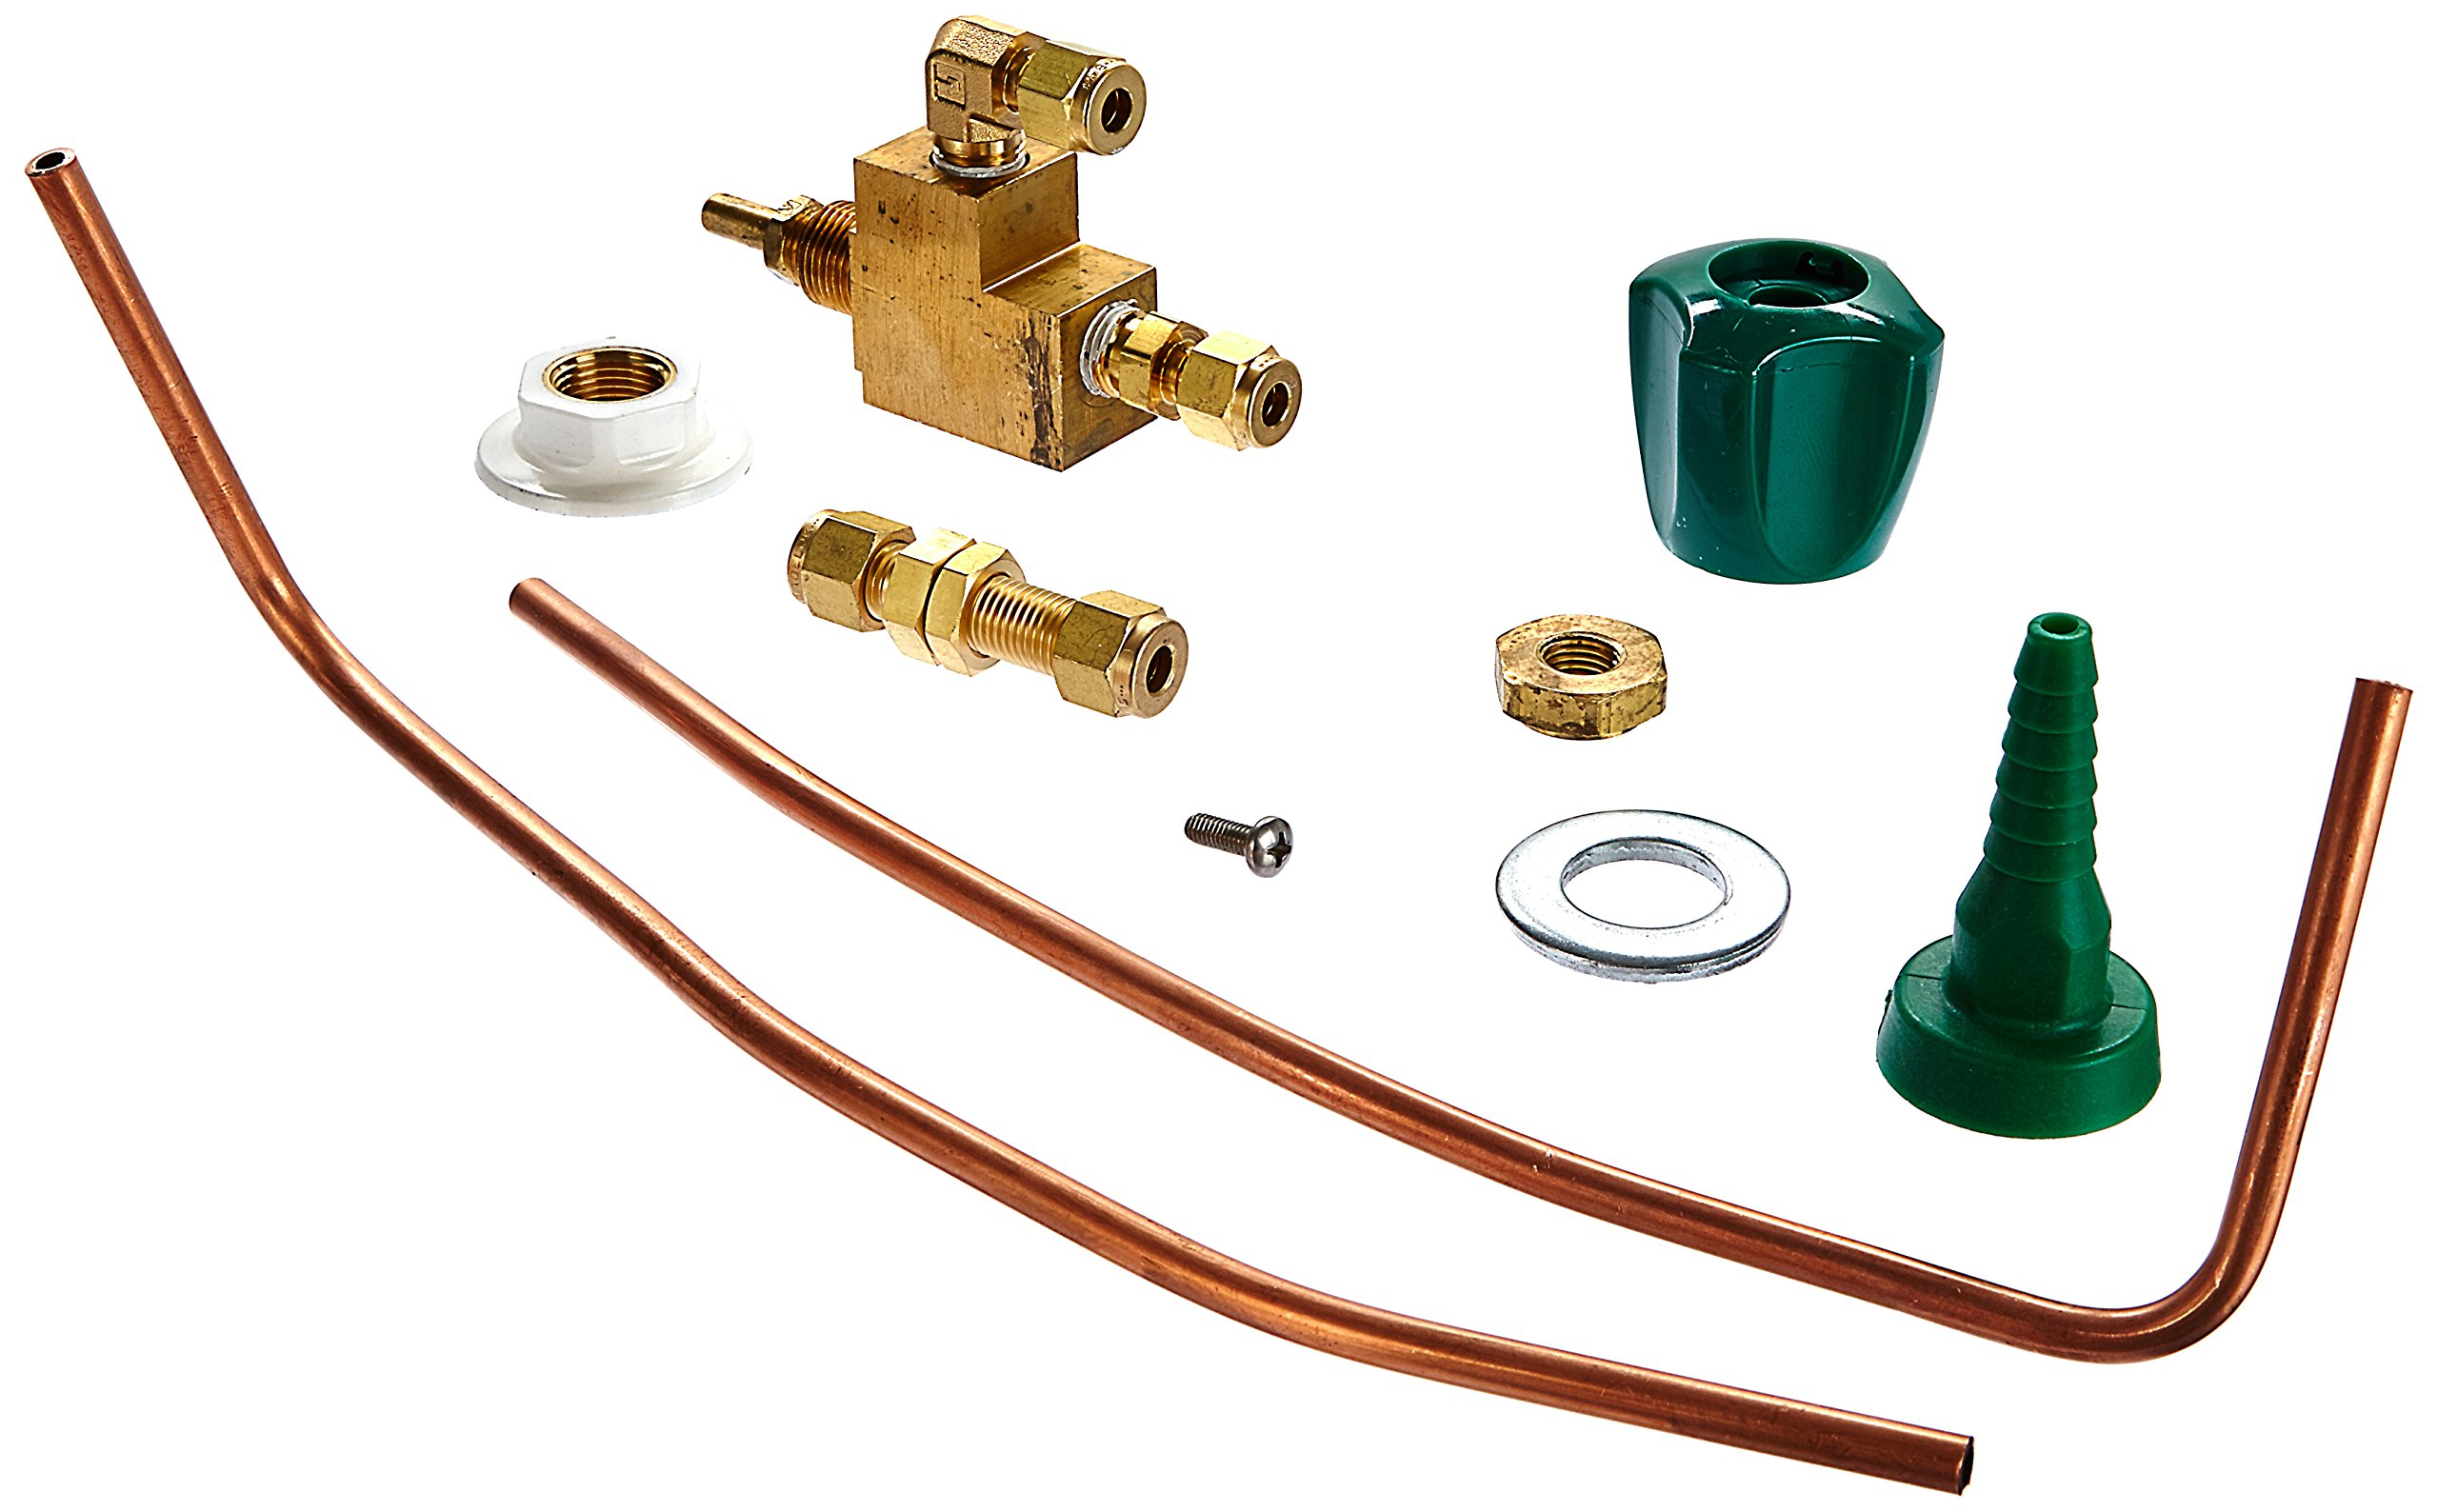 LABCONCO/BUCHLER 9808300 Cold Water Standard Service Fixture Kit for Laboratory Hoods, 4 lb. Weight